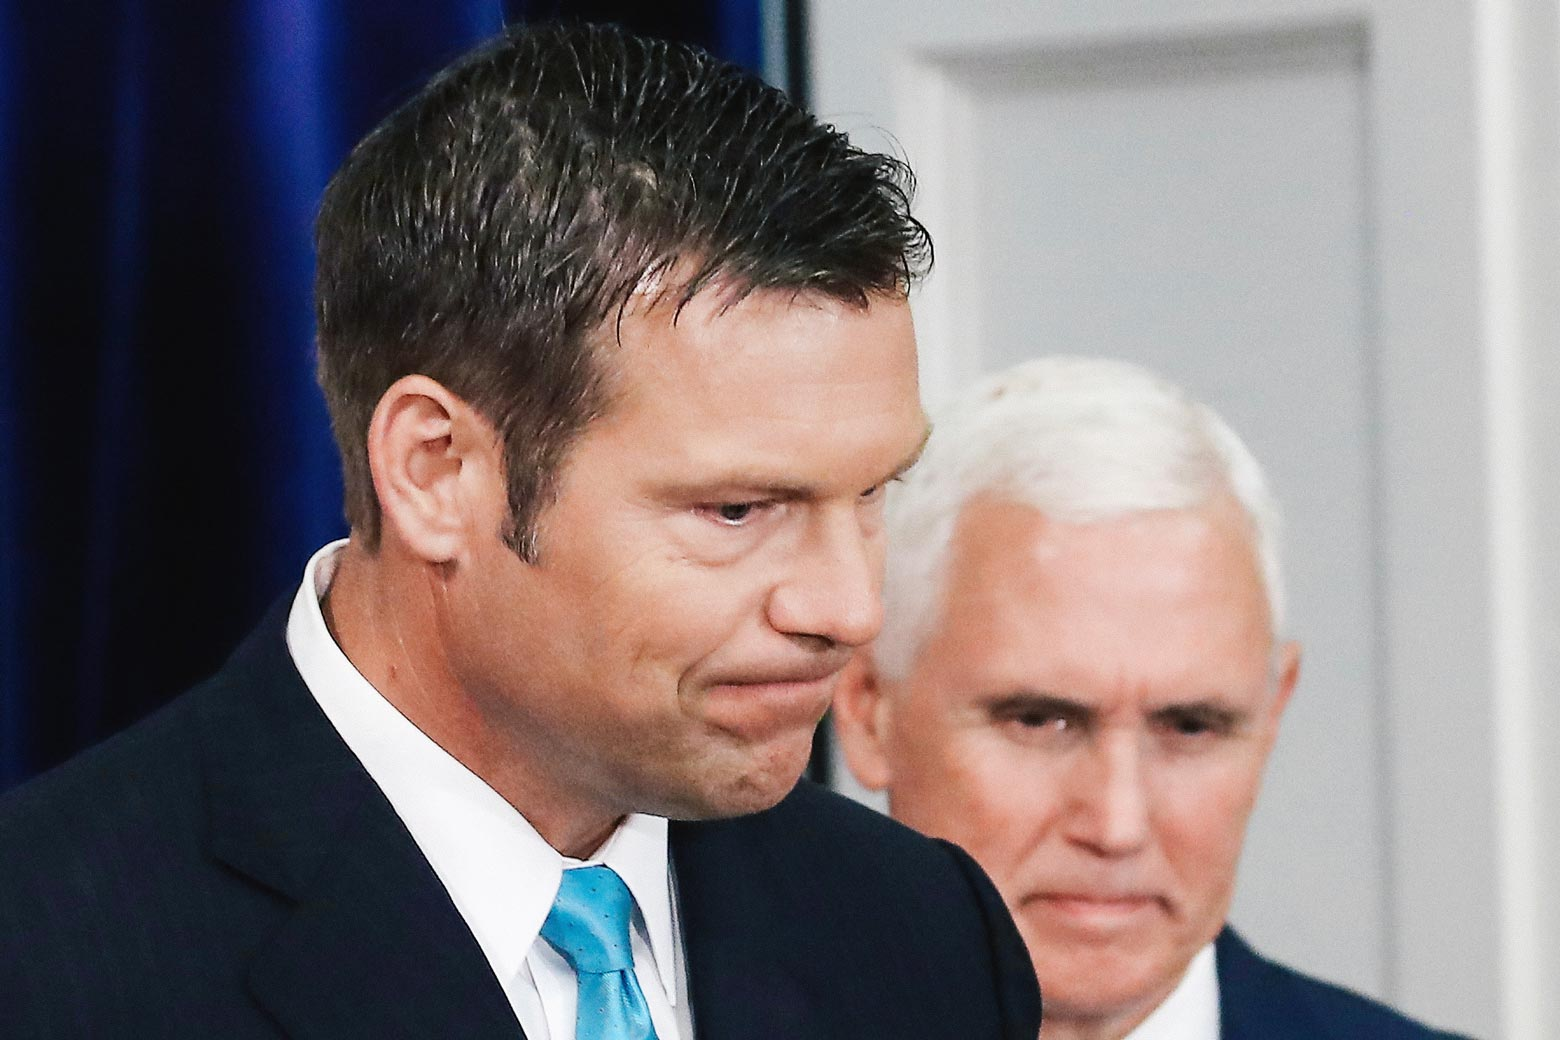 Kansas Secretary of State, Kris Kobach (L) and US Vice President Mike Pence, attend the first meeting of the Presidential Advisory Commission on Election Integrity in the Eisenhower Executive Office Building, on July 19, 2017 in Washington, DC.